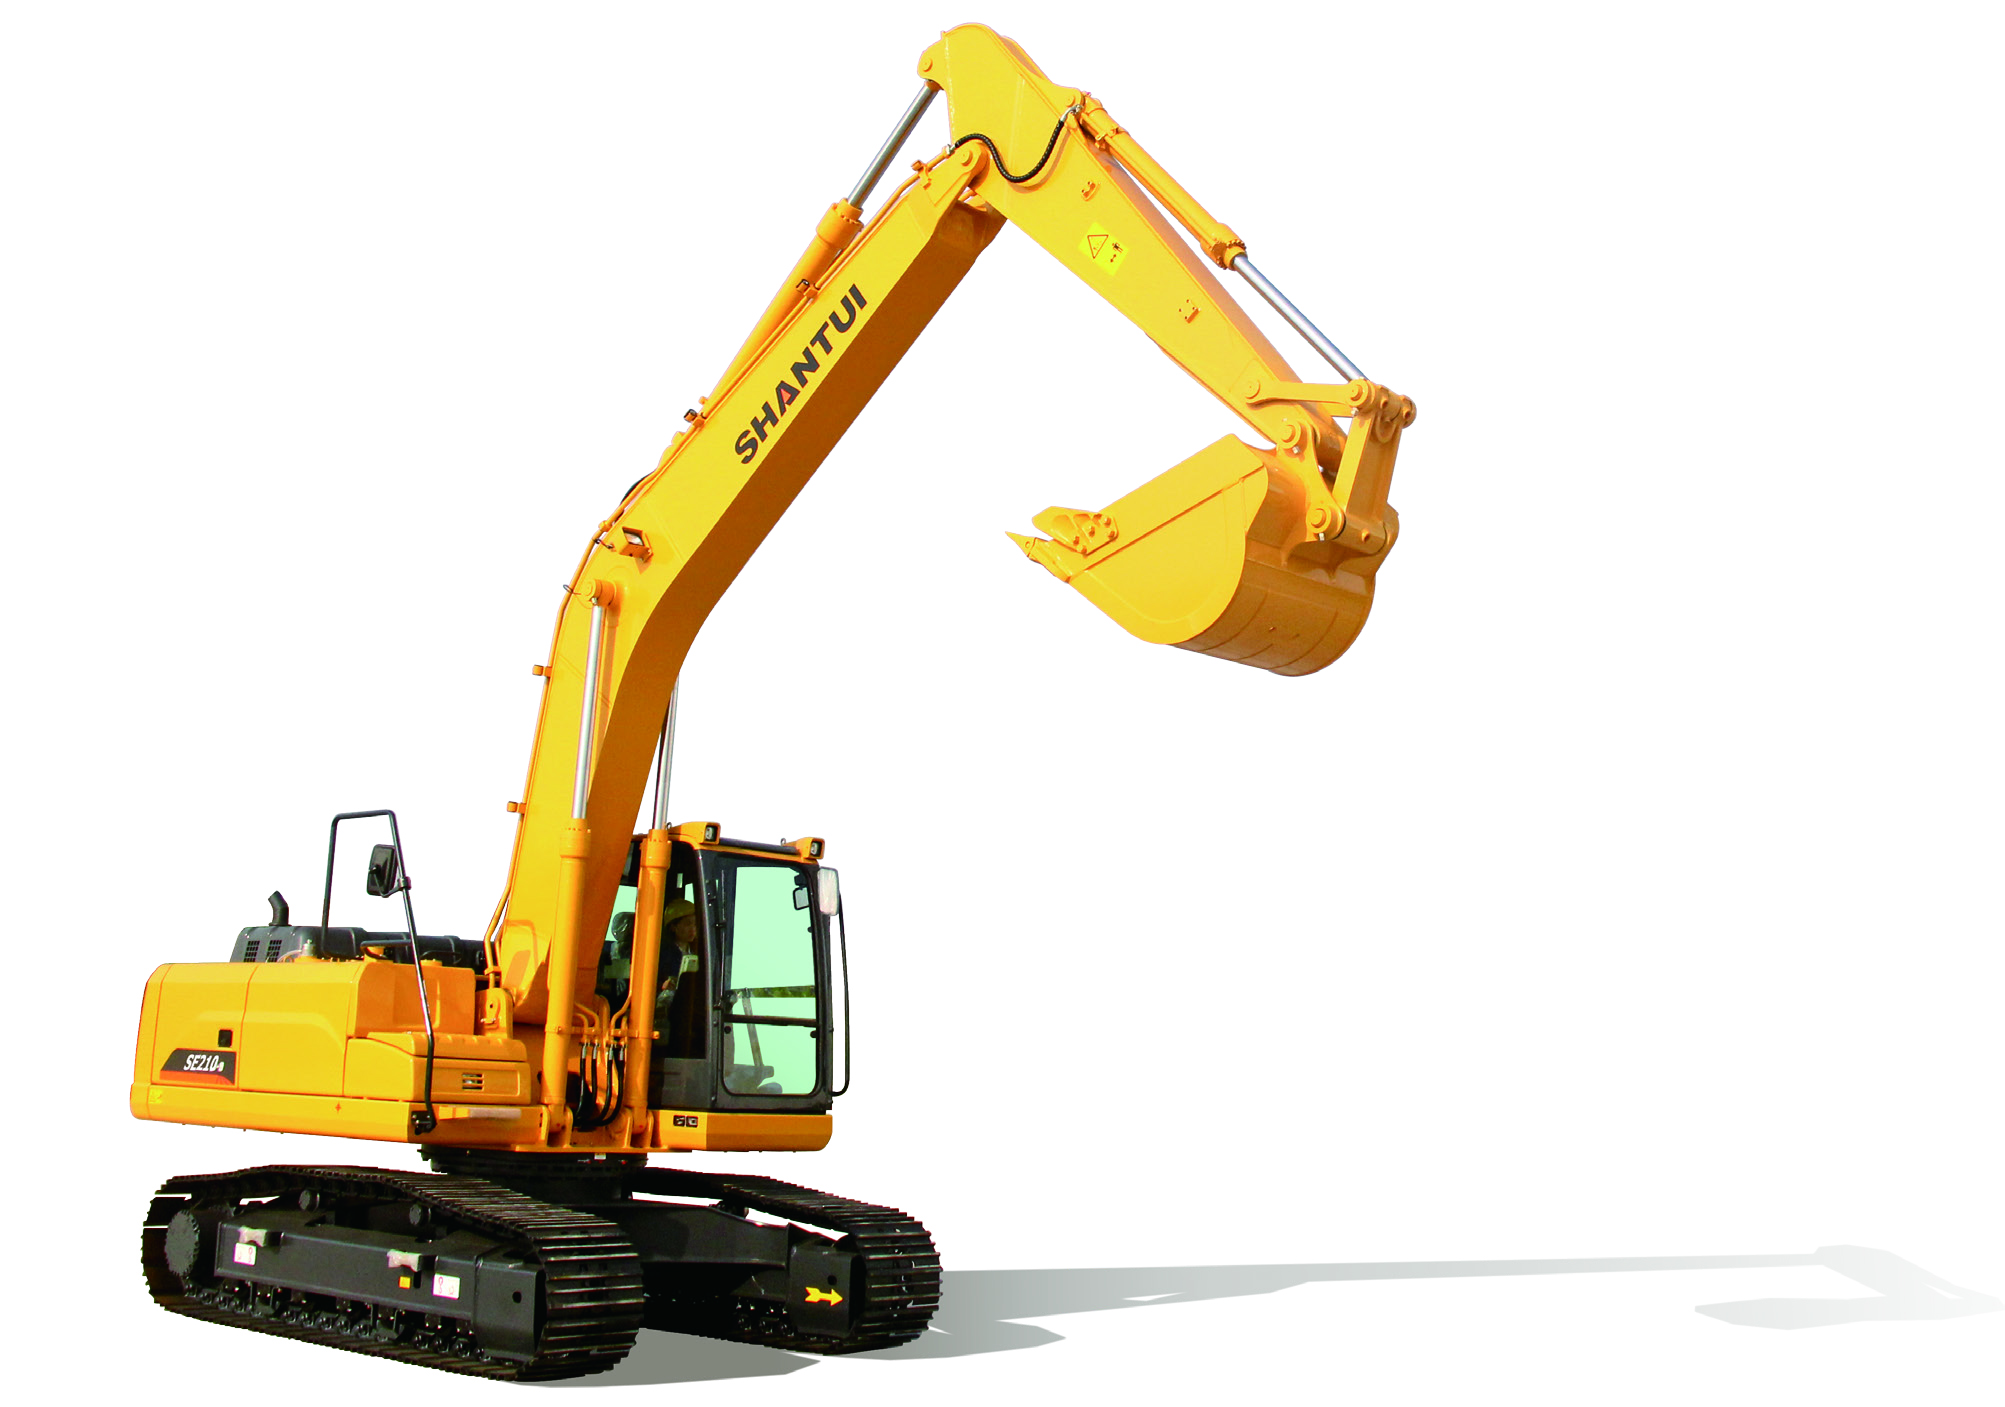 Shantui Medium-Sized 20.8ton Crawler Excavator